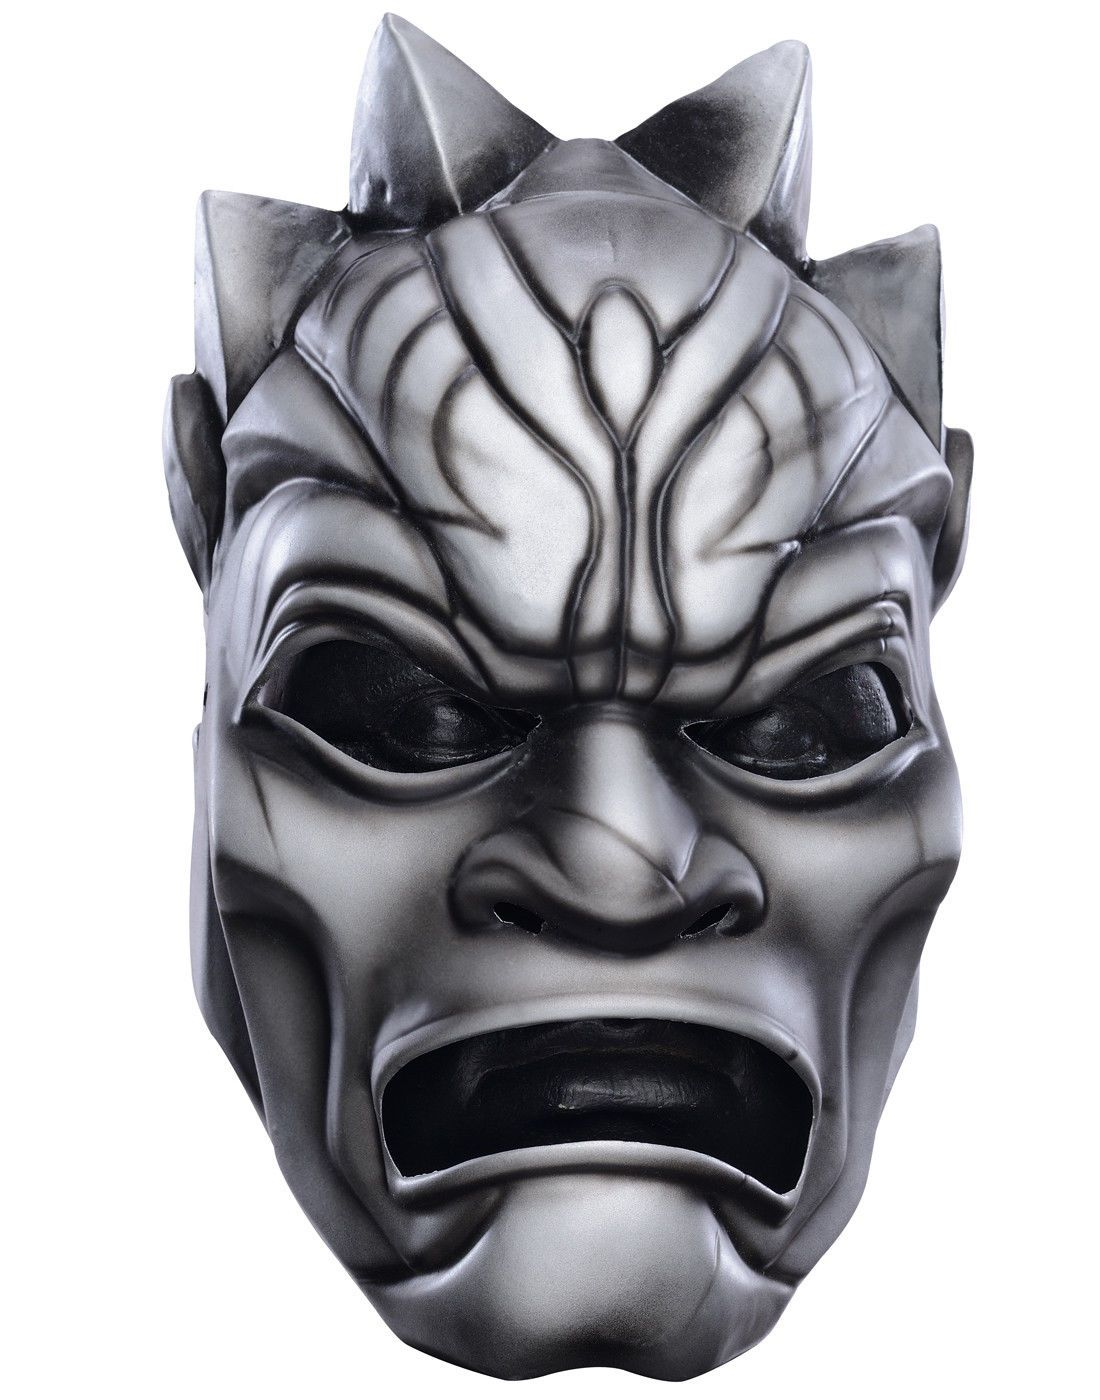 300 The Movie Immortal Vacuform Mask with Fabric Hood